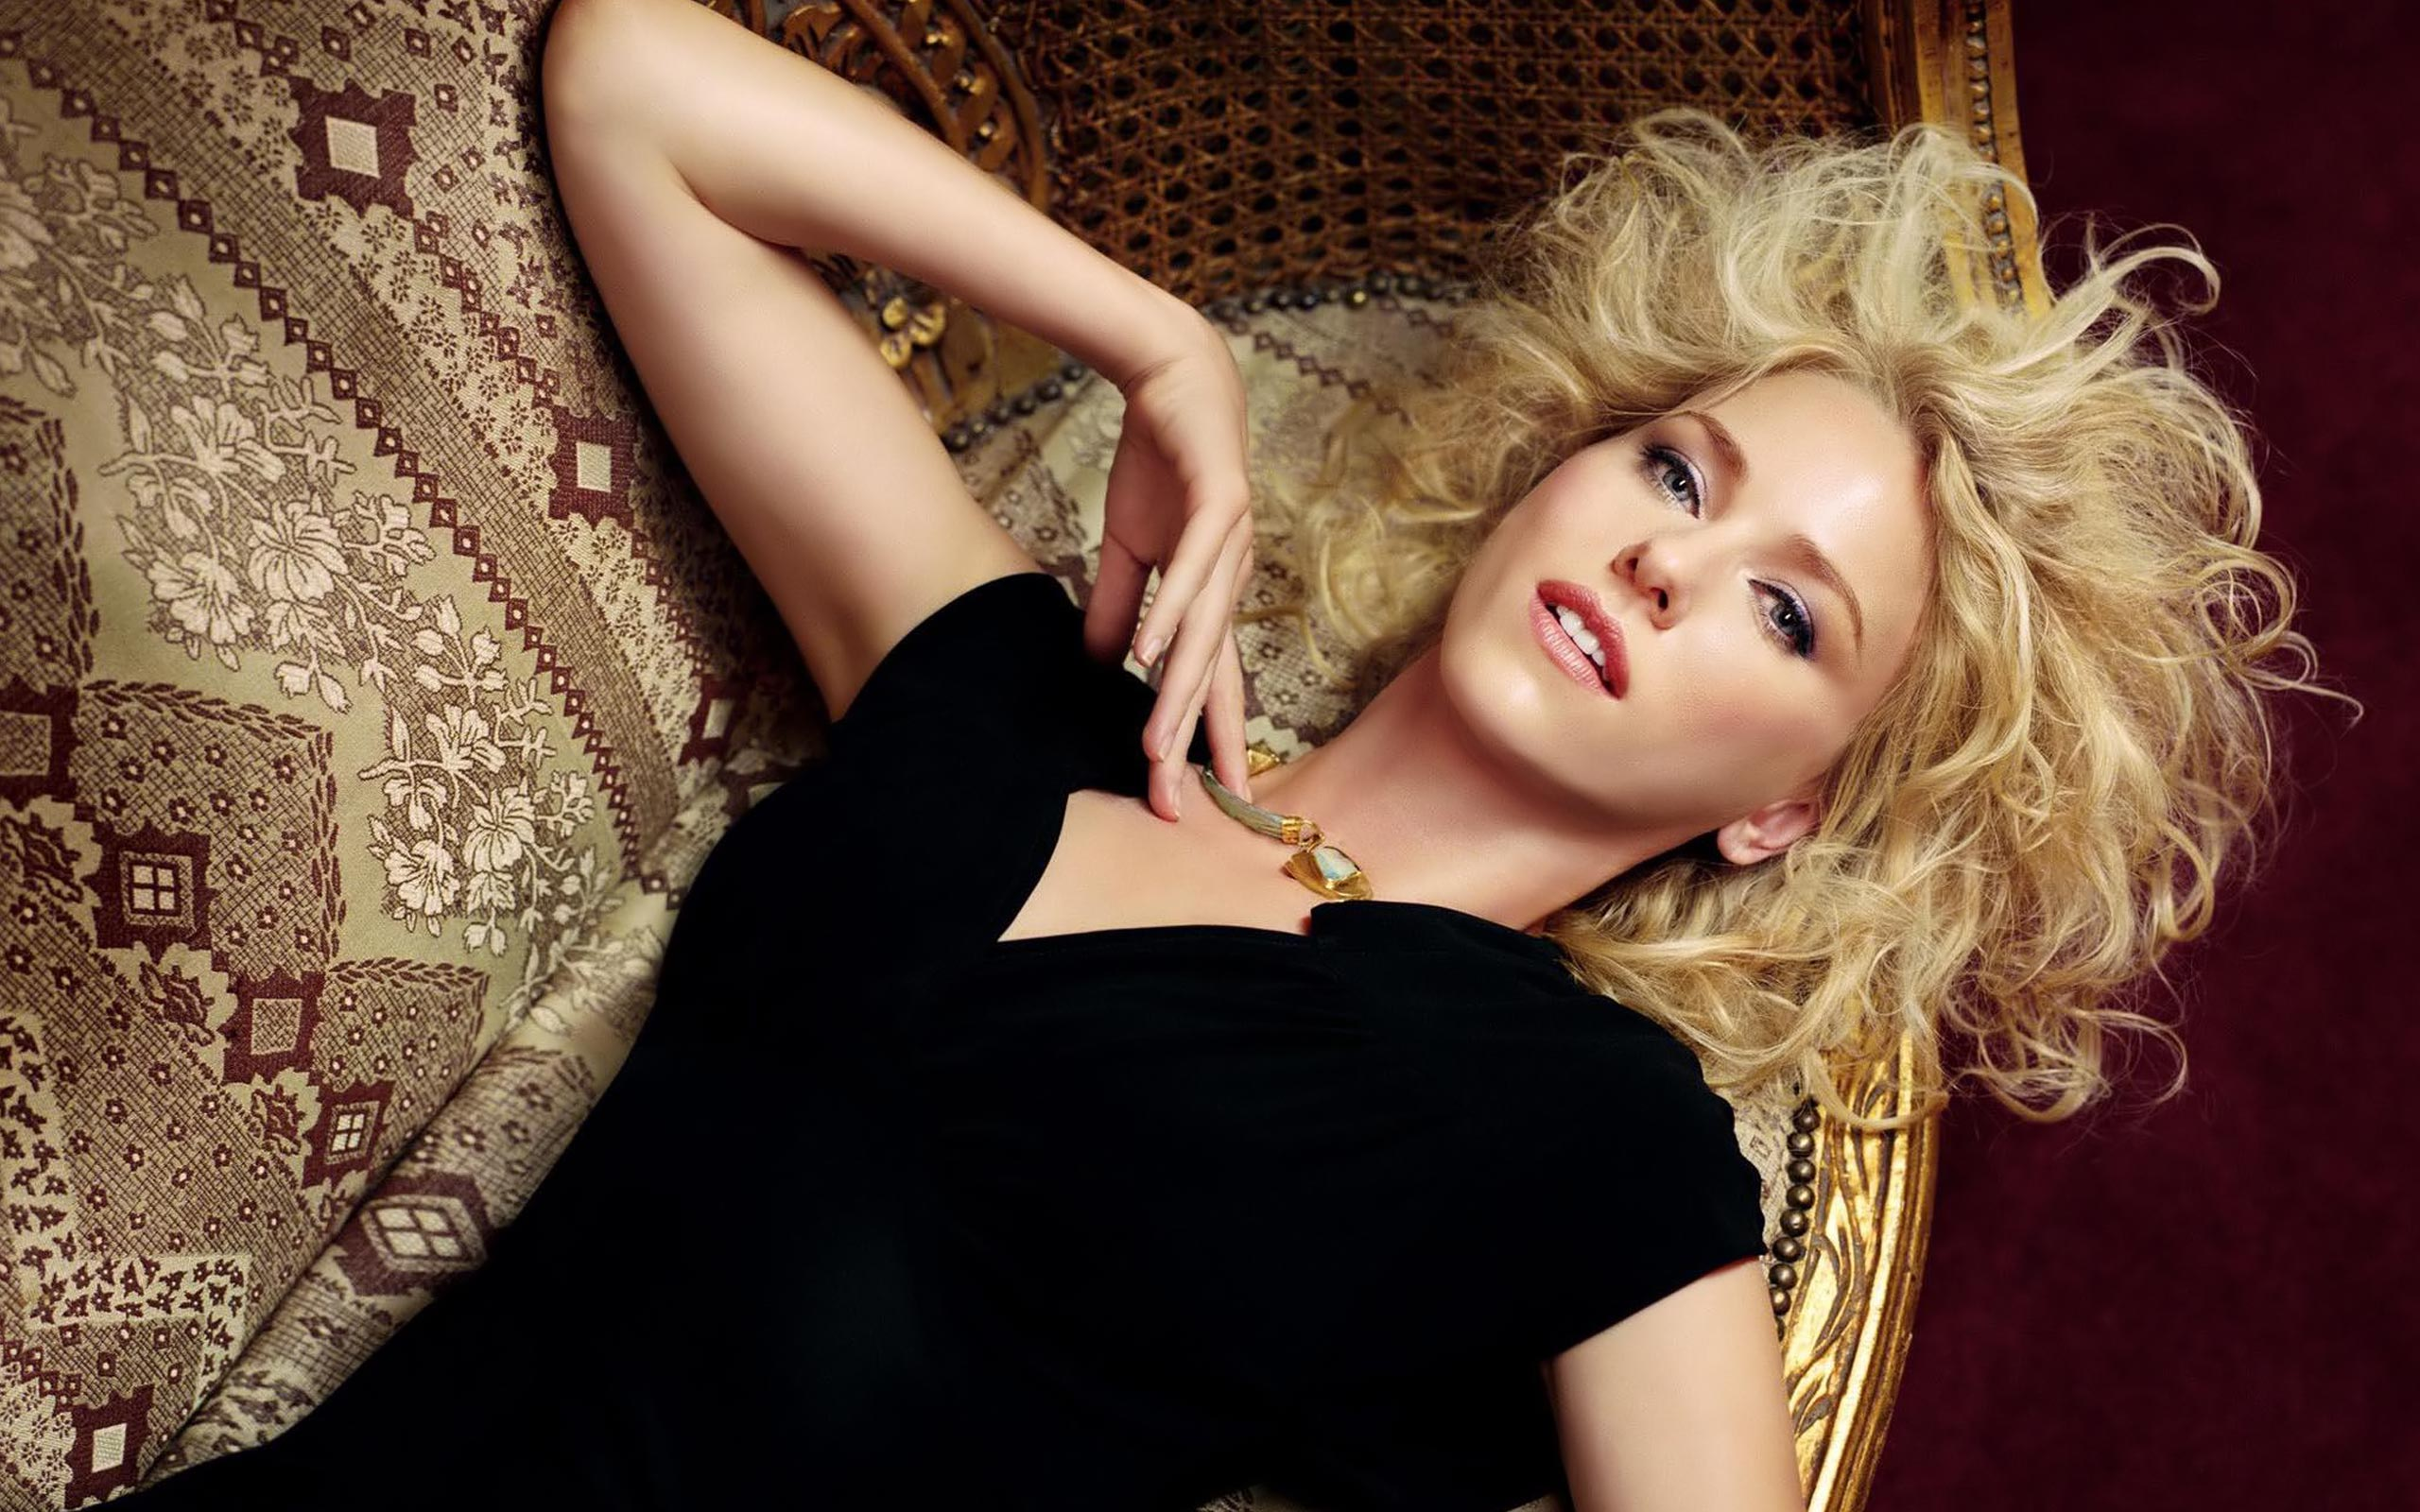 Naomi Watts Wallpapers High Resolution and Quality Download 2560x1600